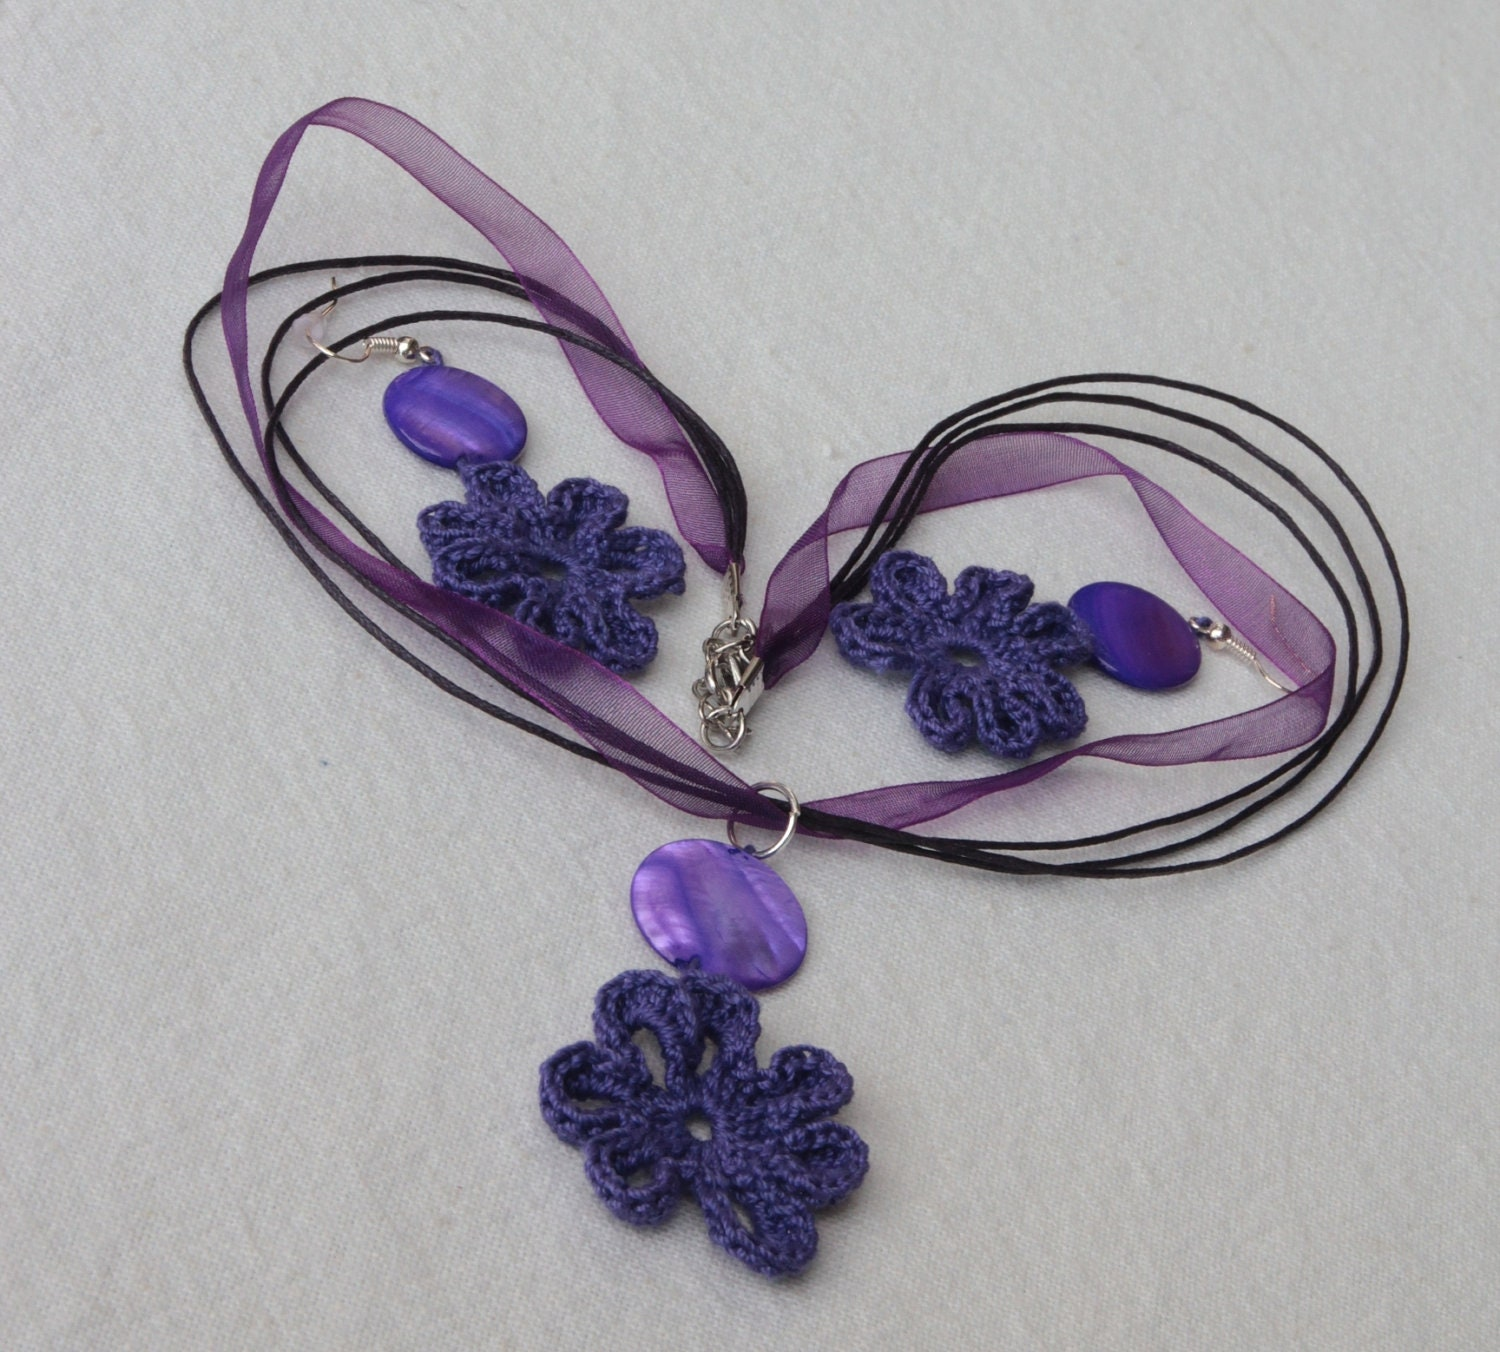 SALE - Violet crochet flower necklace and earrings with mother of pearl beads - IzabelkasJewelry